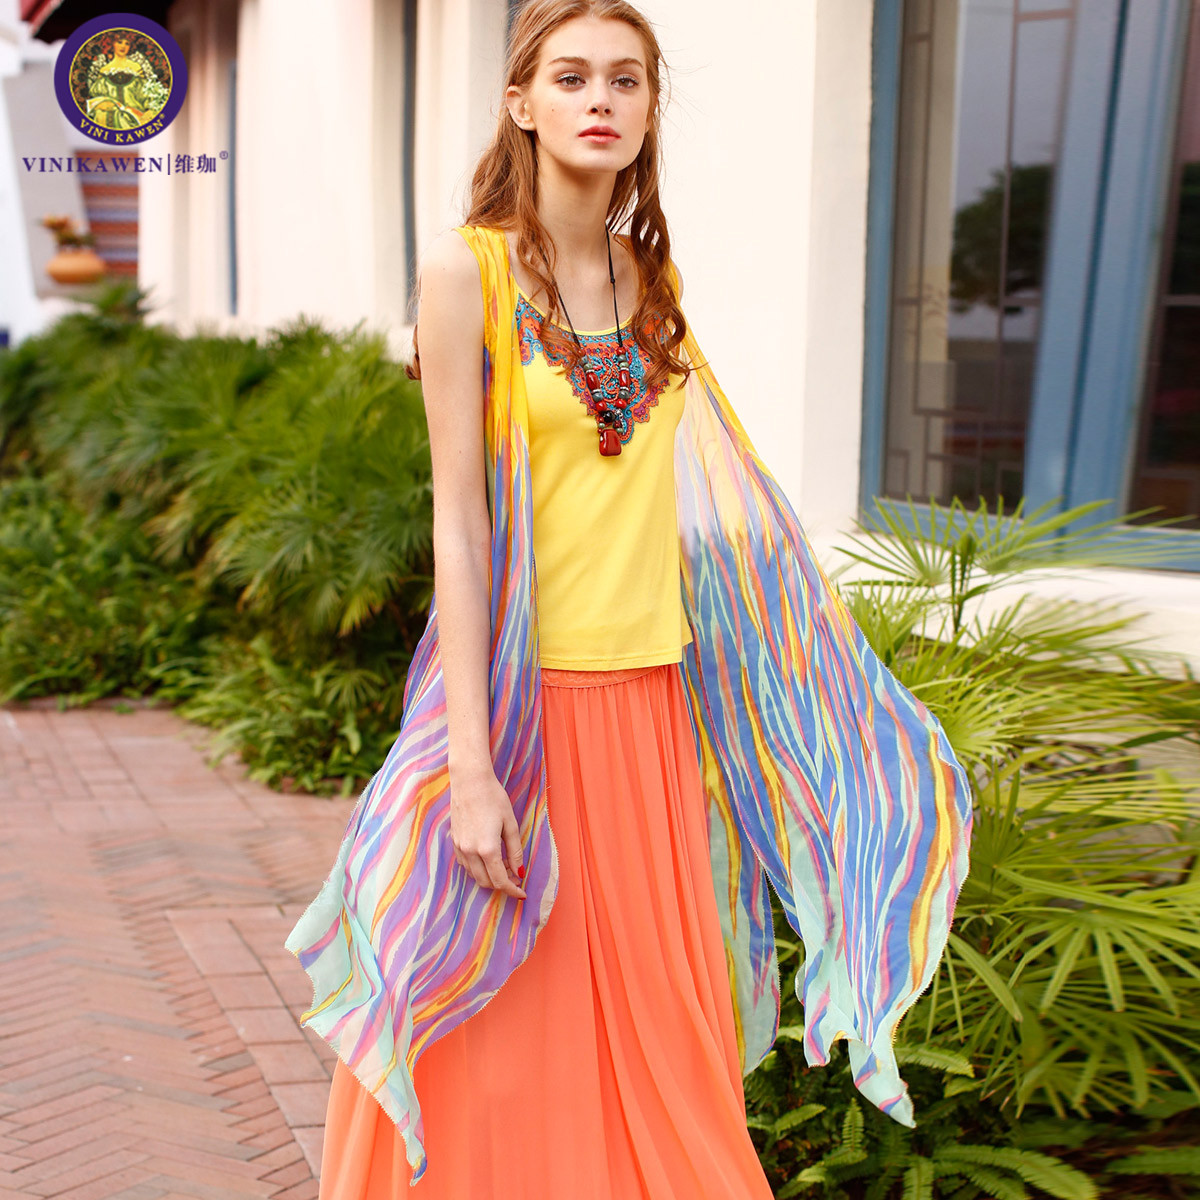 cc1620ee38daa Get Quotations · Chiffon shirt thin cardigan female long section of  bohemian gradient silk silk shawl cardigan beach sun